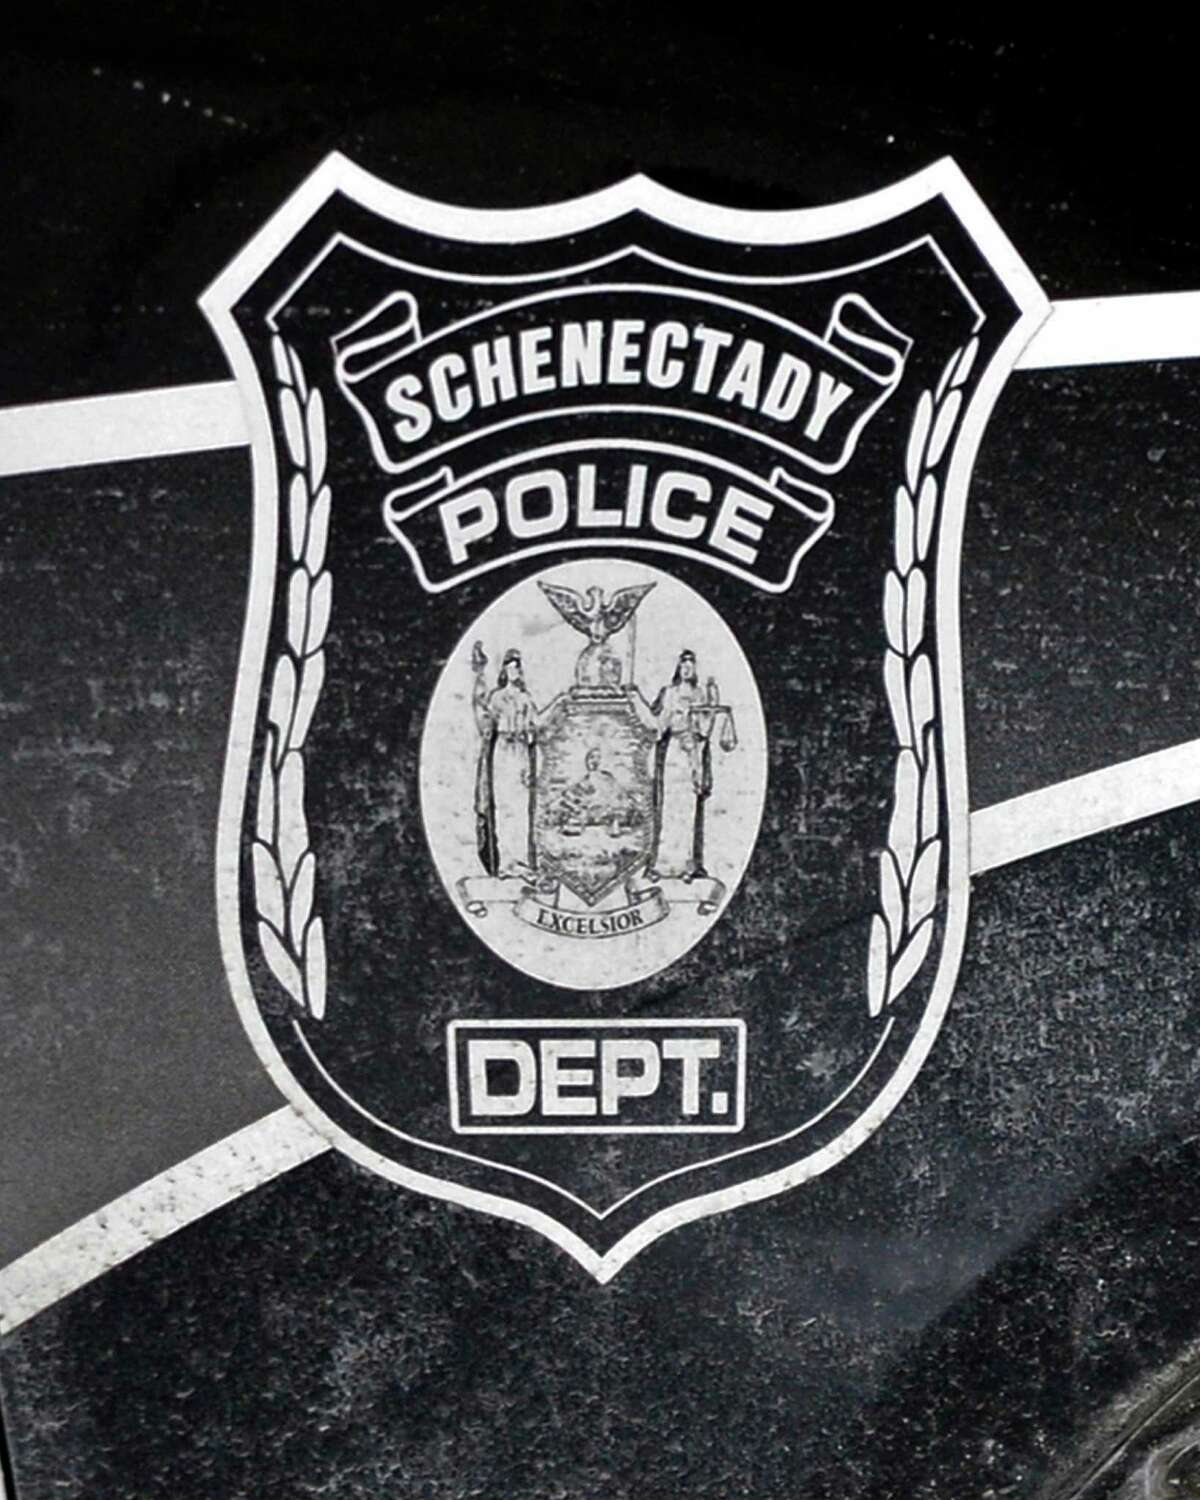 Emblem on a Schenectady city police car in Schenectady Wednesday Feb. 20, 2013. (John Carl D'Annibale / Times Union)